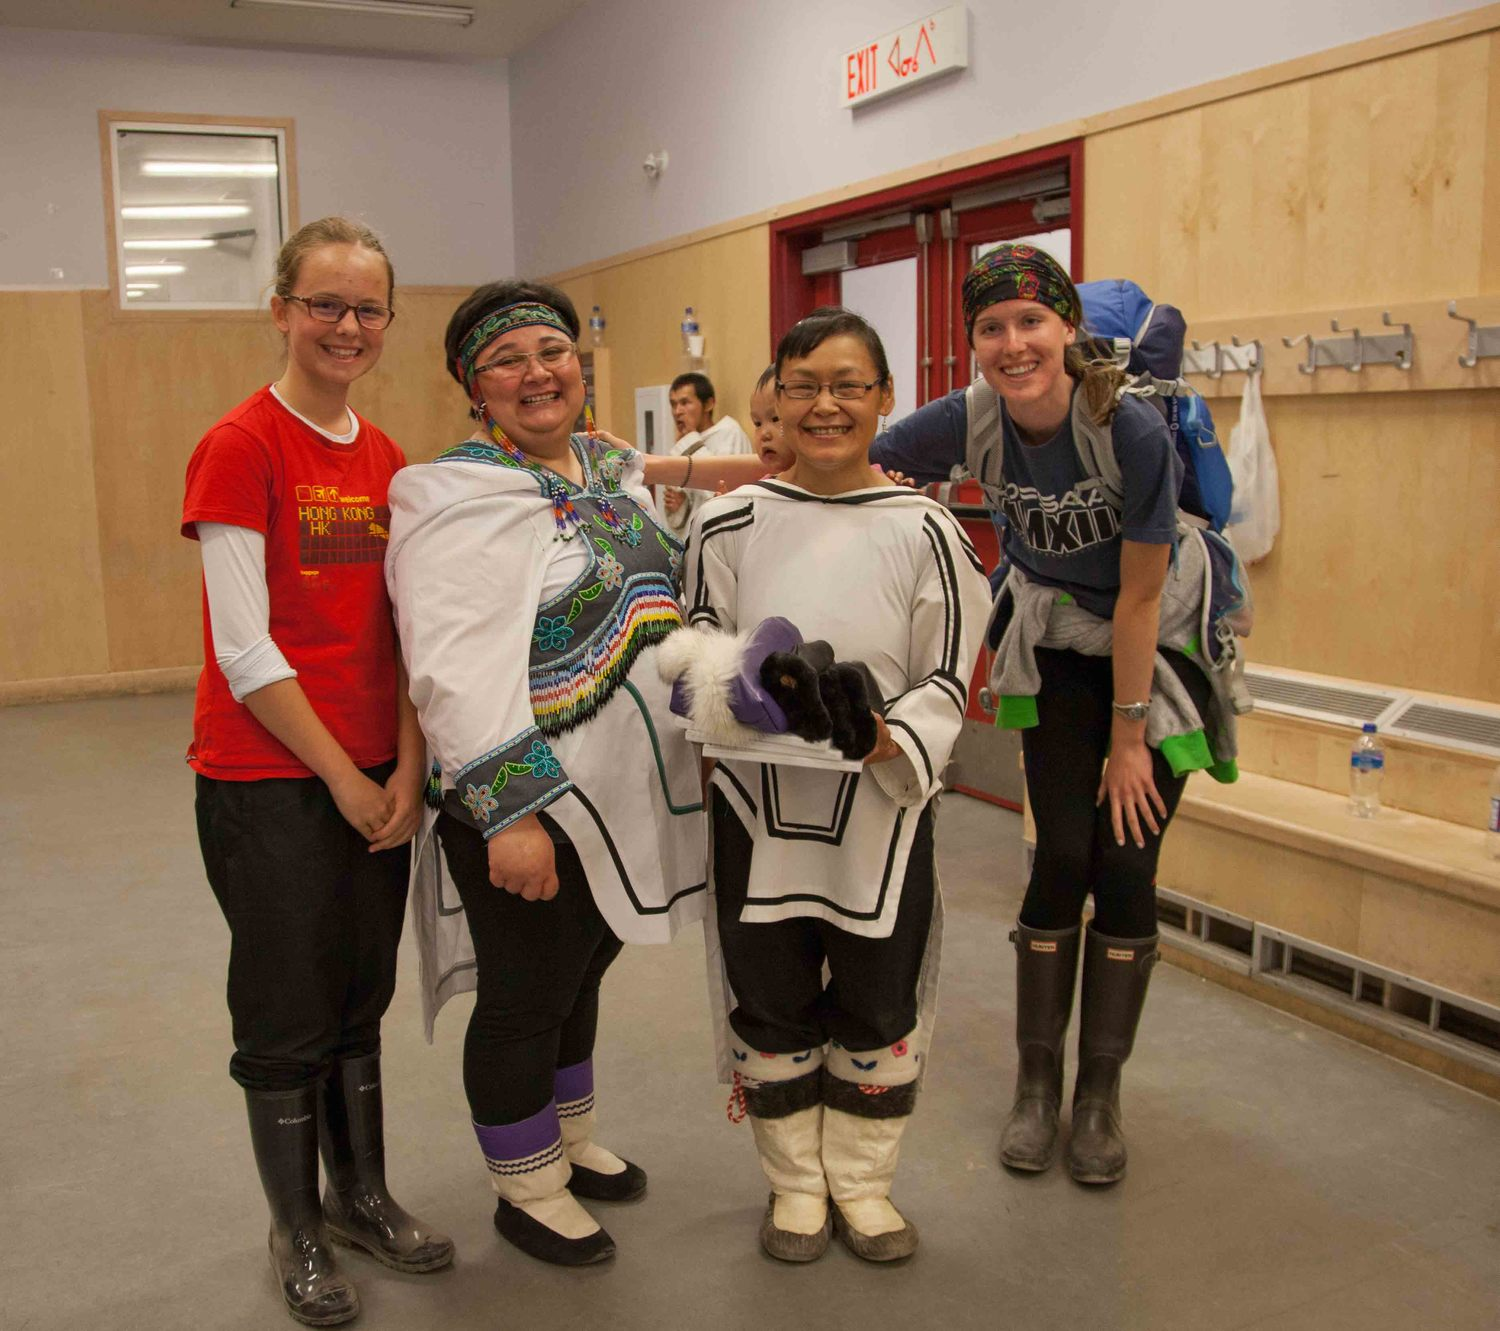 At the cultural centre in Pond Inlet, Nunavut, giving 3 photo books.